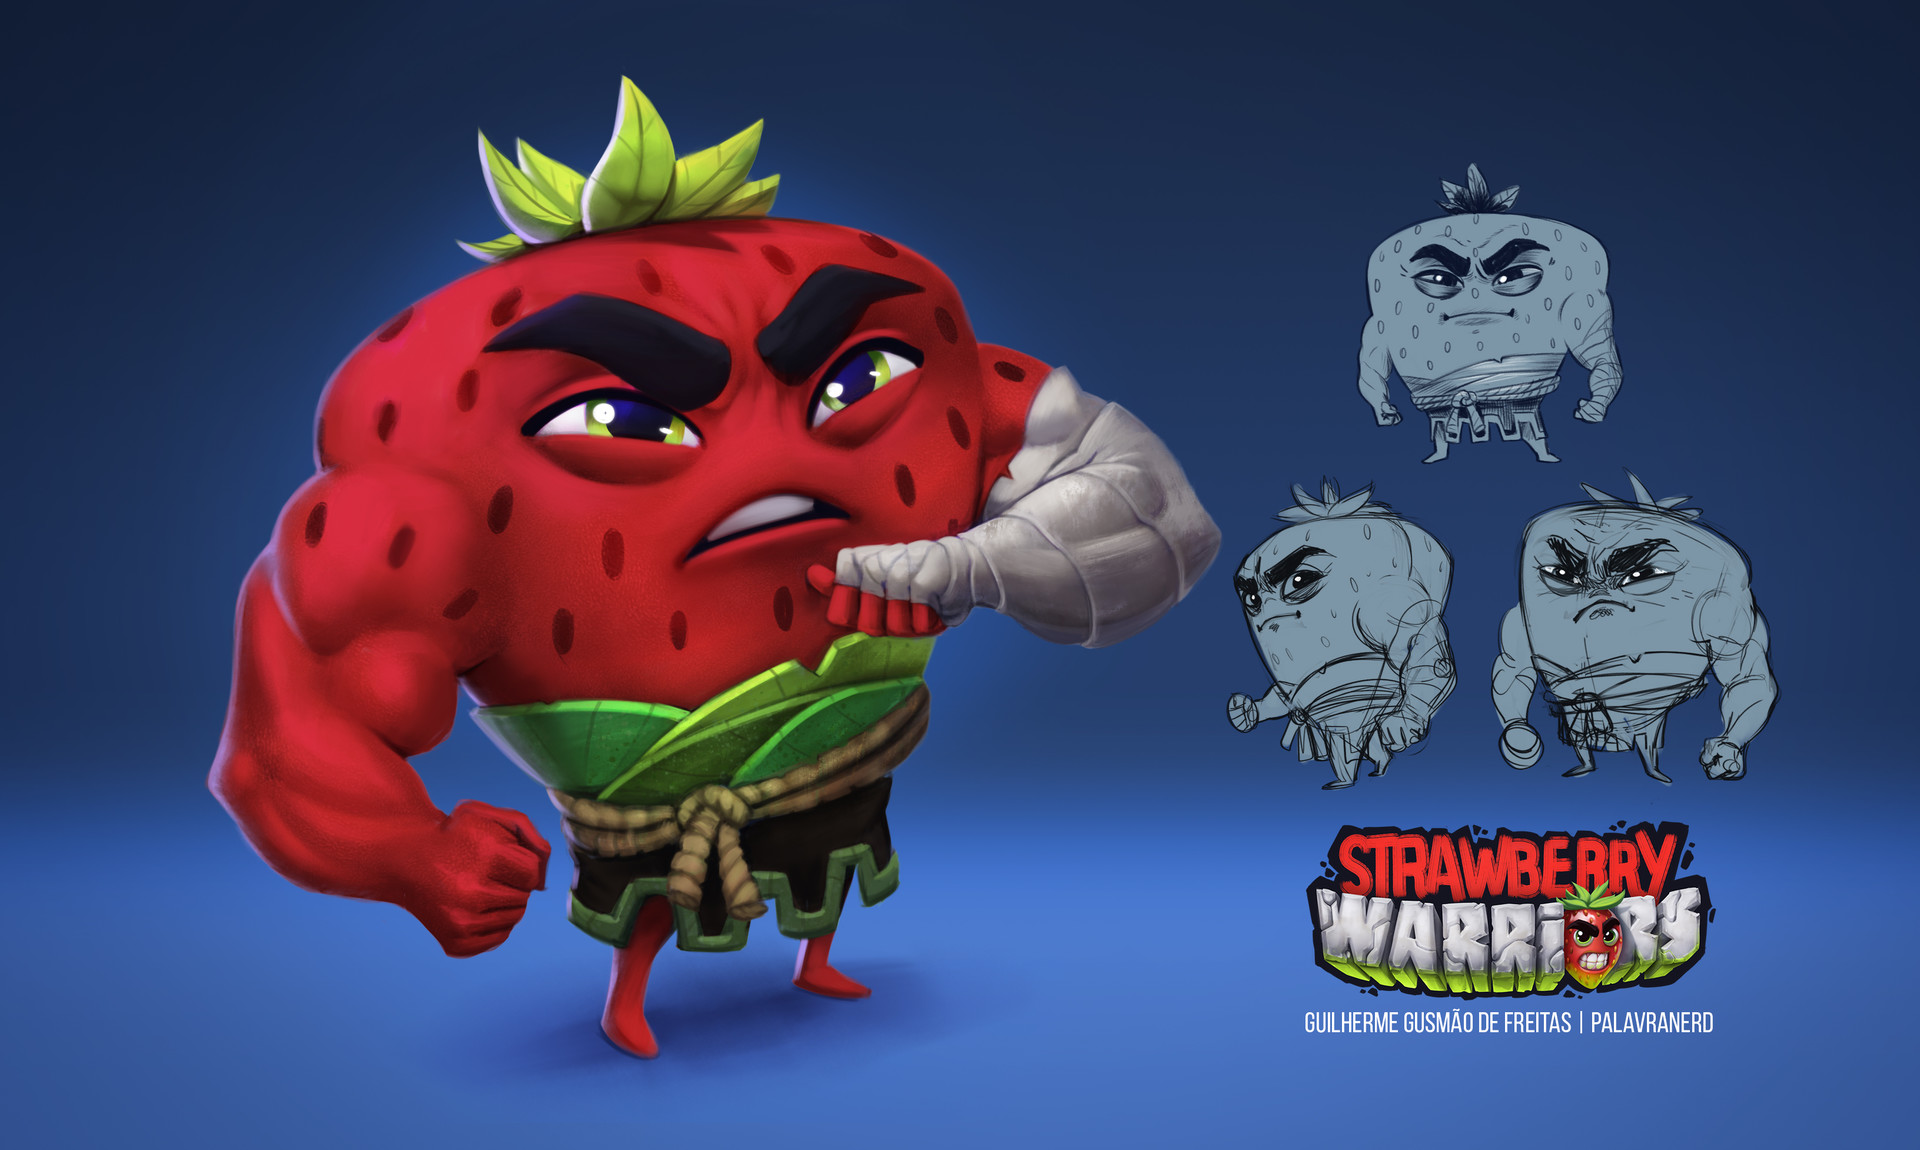 Guilherme freitas strawberry character